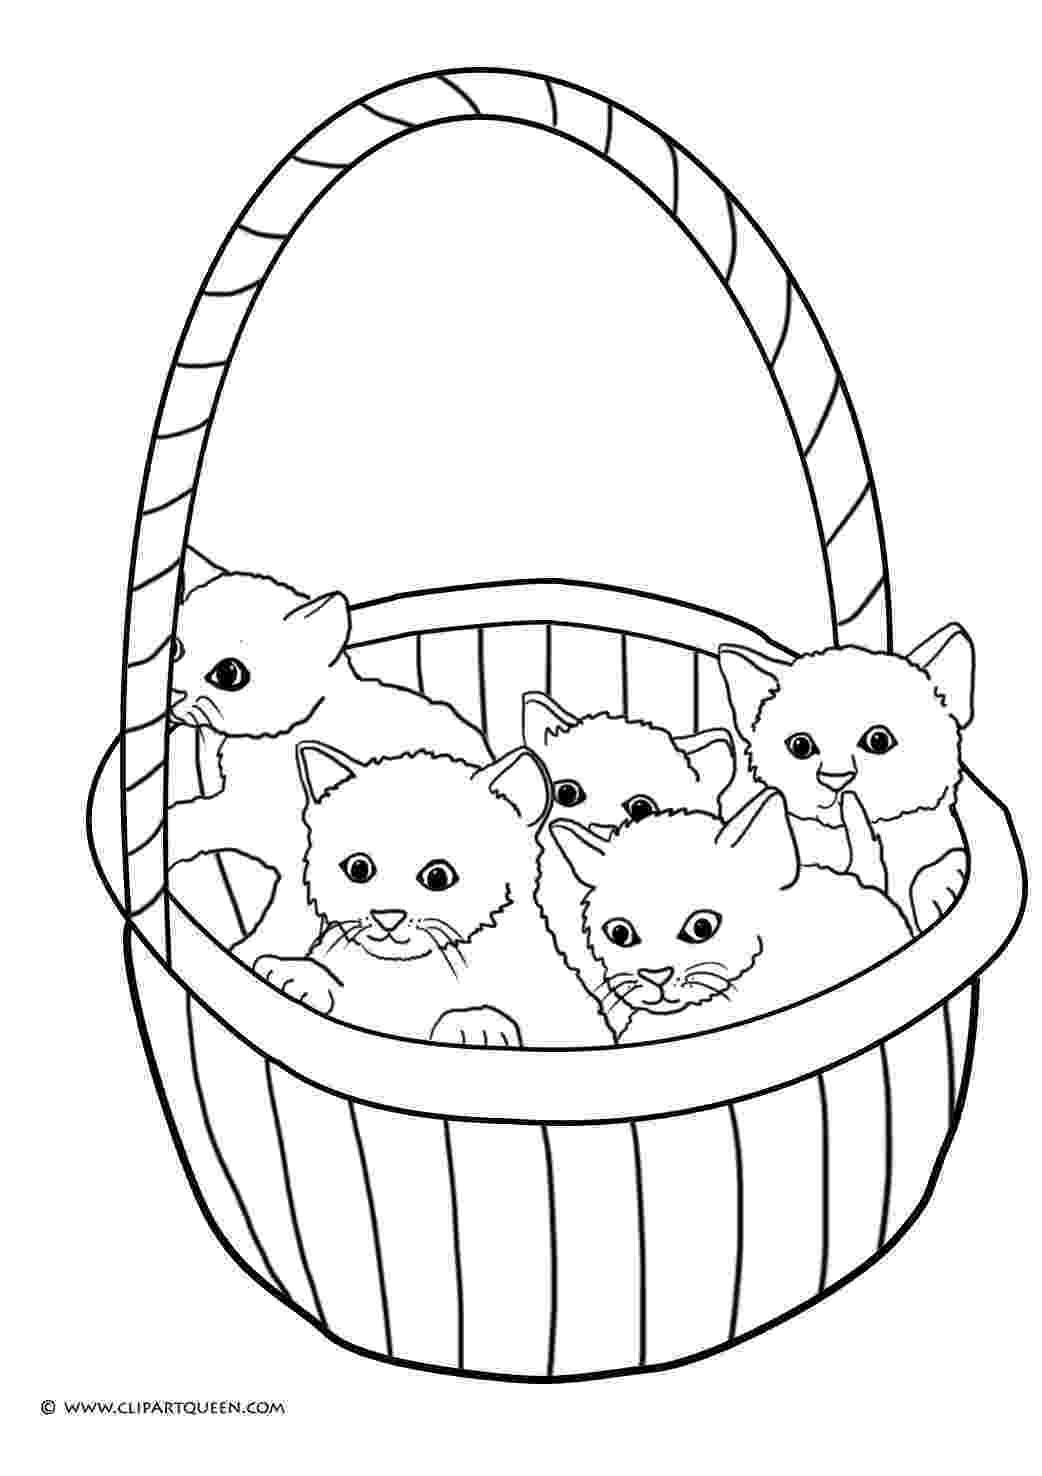 cute kitten colouring pages cute kitten printable coloring pages coloring home kitten cute pages colouring